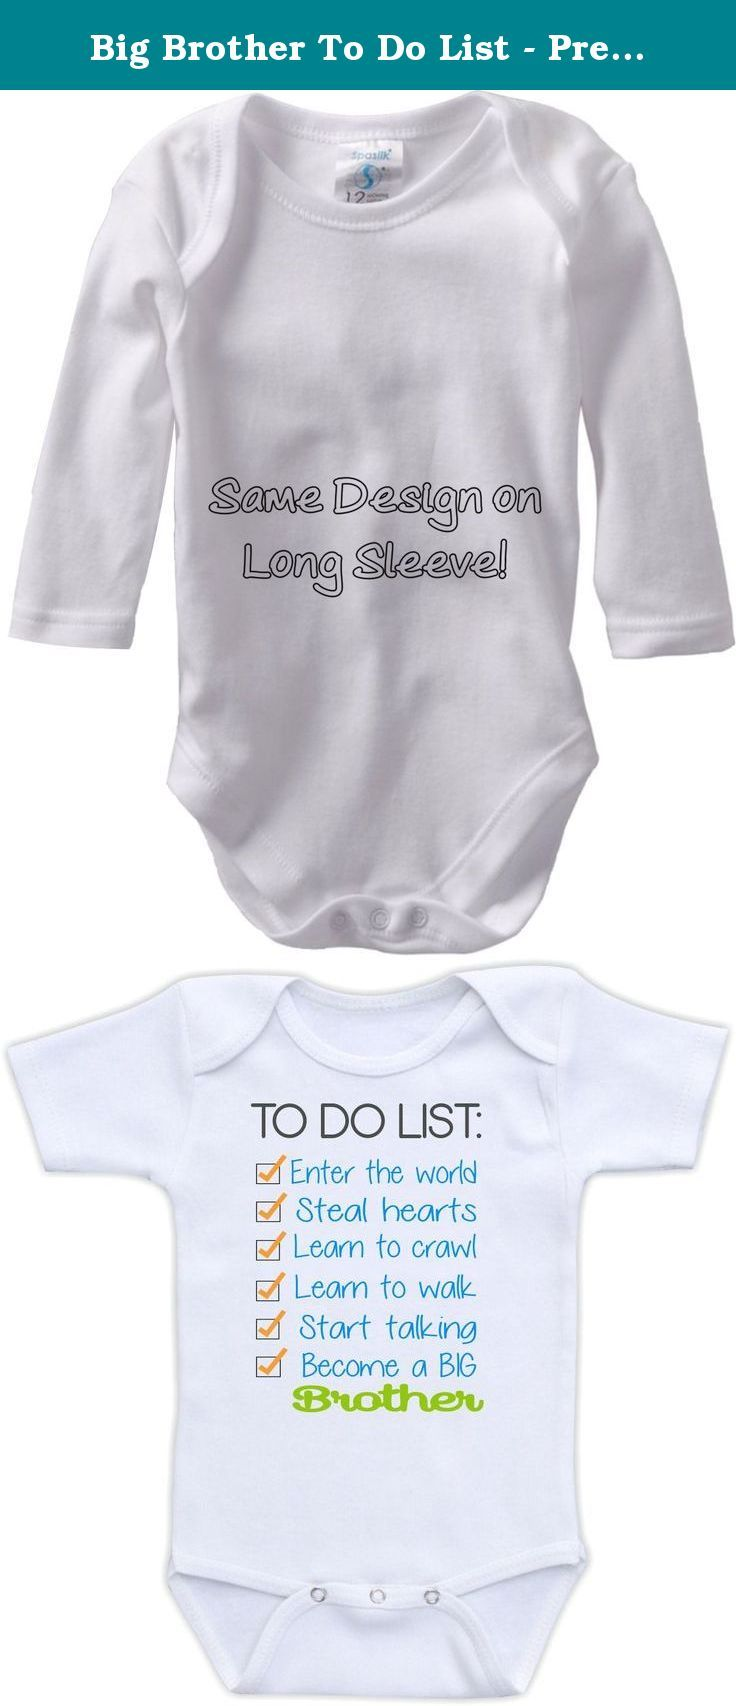 Big Brother To Do List - Pregnancy Announcement Bodysuit (18M Long Sleeve Bodysuit). Doozy Designs only uses high quality name brand bodysuits that are extremely soft and 100% cotton. Bodysuits are available in short and long sleeve in sizes Newborn, 3M, 6M, 9M, 12M, 18M, 24M. Bodysuits come in white only. Bodysuits features a 3 snap closure at the bottom for quick diaper changes. All of our designs are printed from vector art using commercial inks so the image on your bodysuit will be…